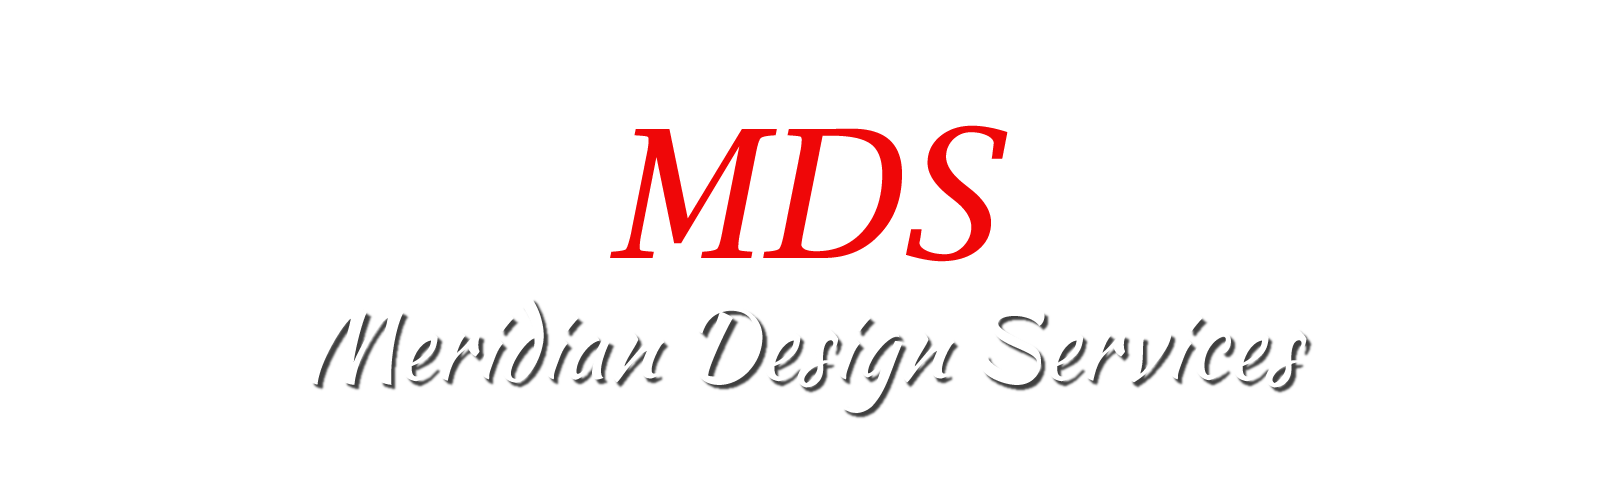 Logo with writing of Meridian Design Services